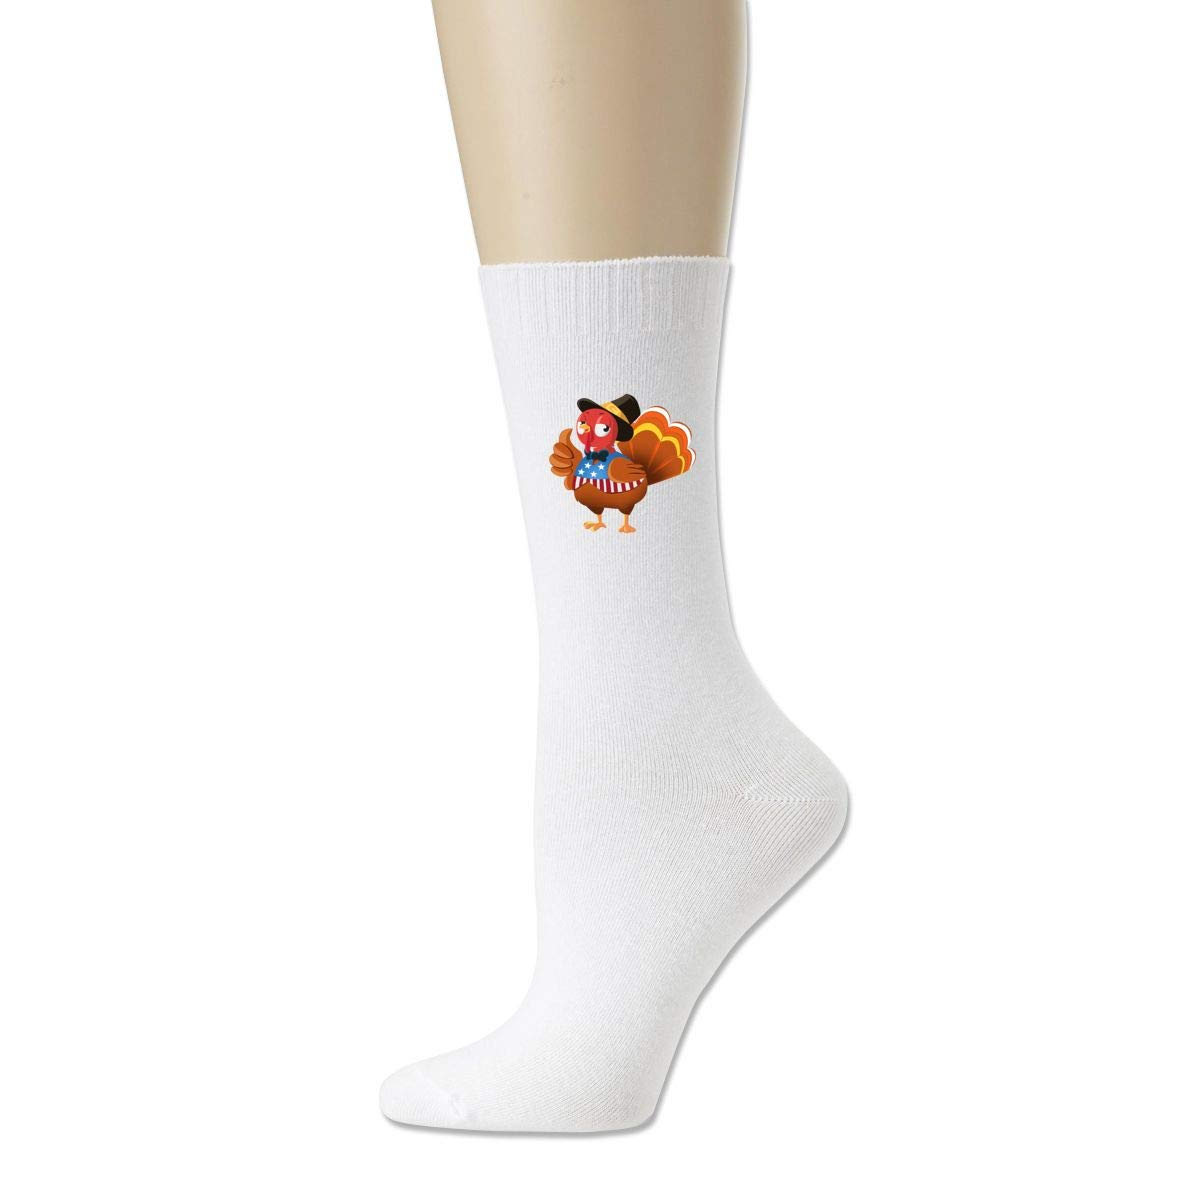 Women High Ankle Cotton Crew Socks Flag Of The United States Casual Sport Stocking